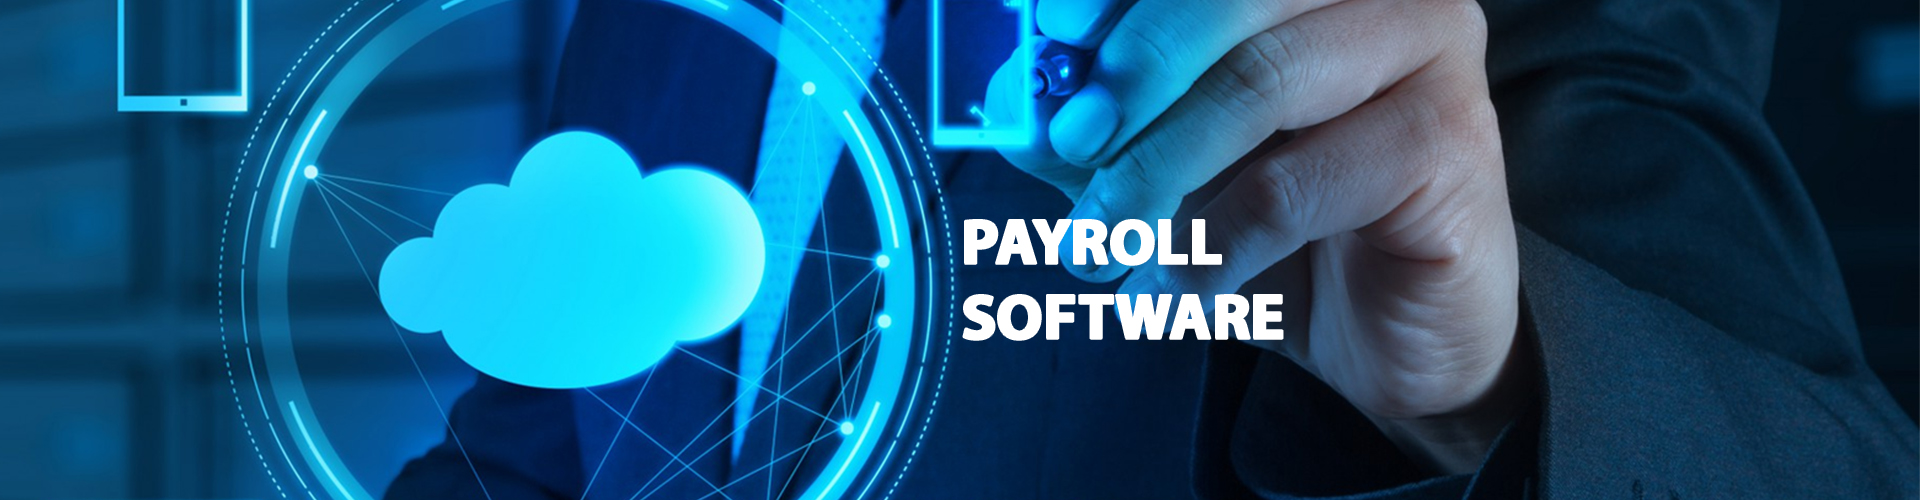 Global payroll software